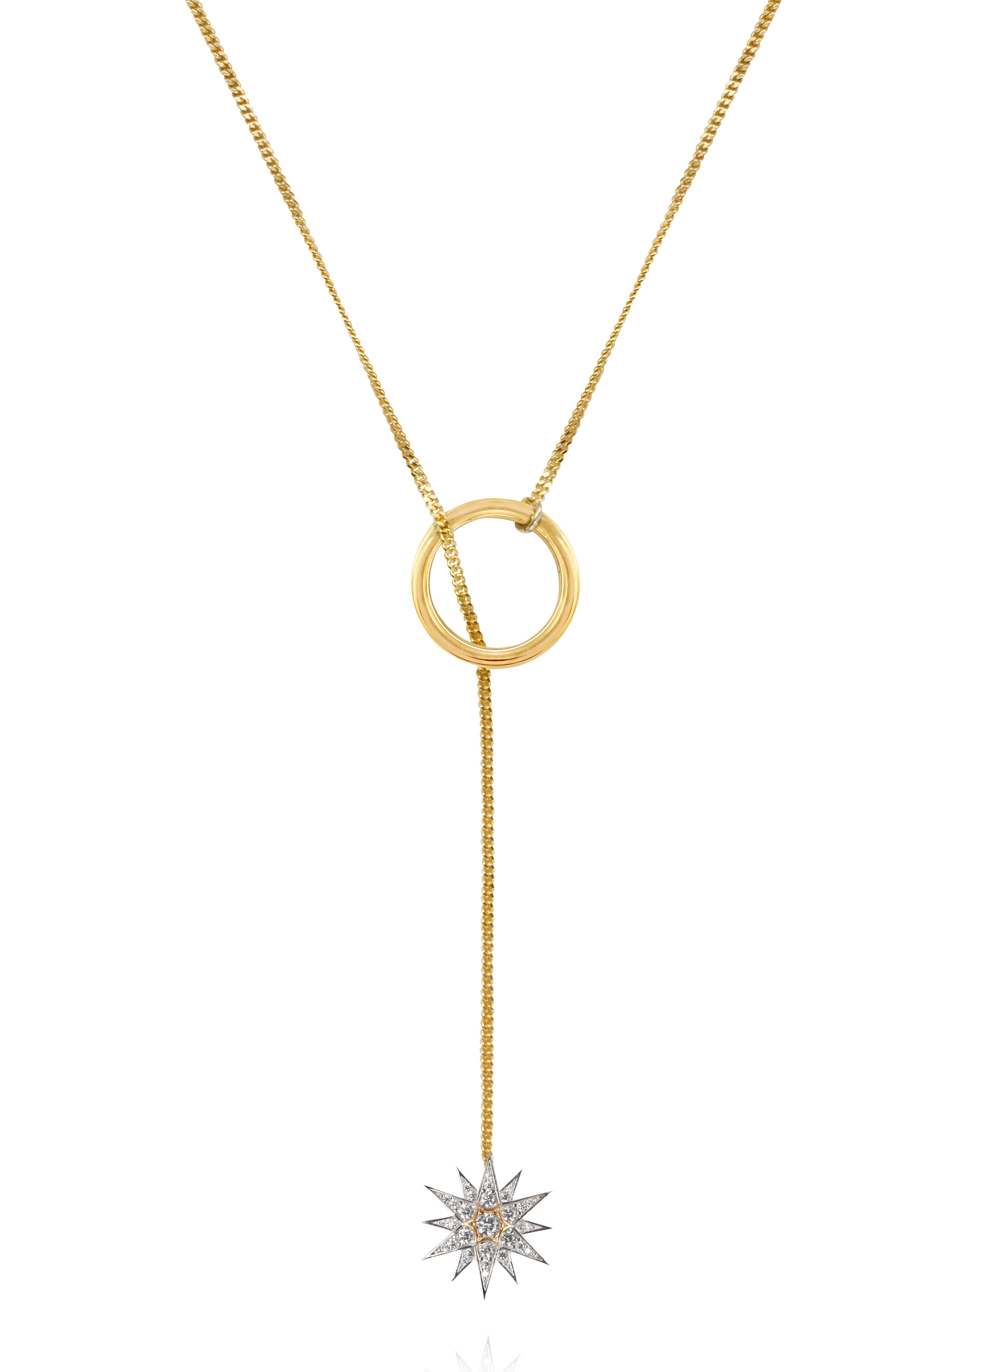 APPLES & FIGS CELESTIAL STAR HOOP LONG NECKLACE